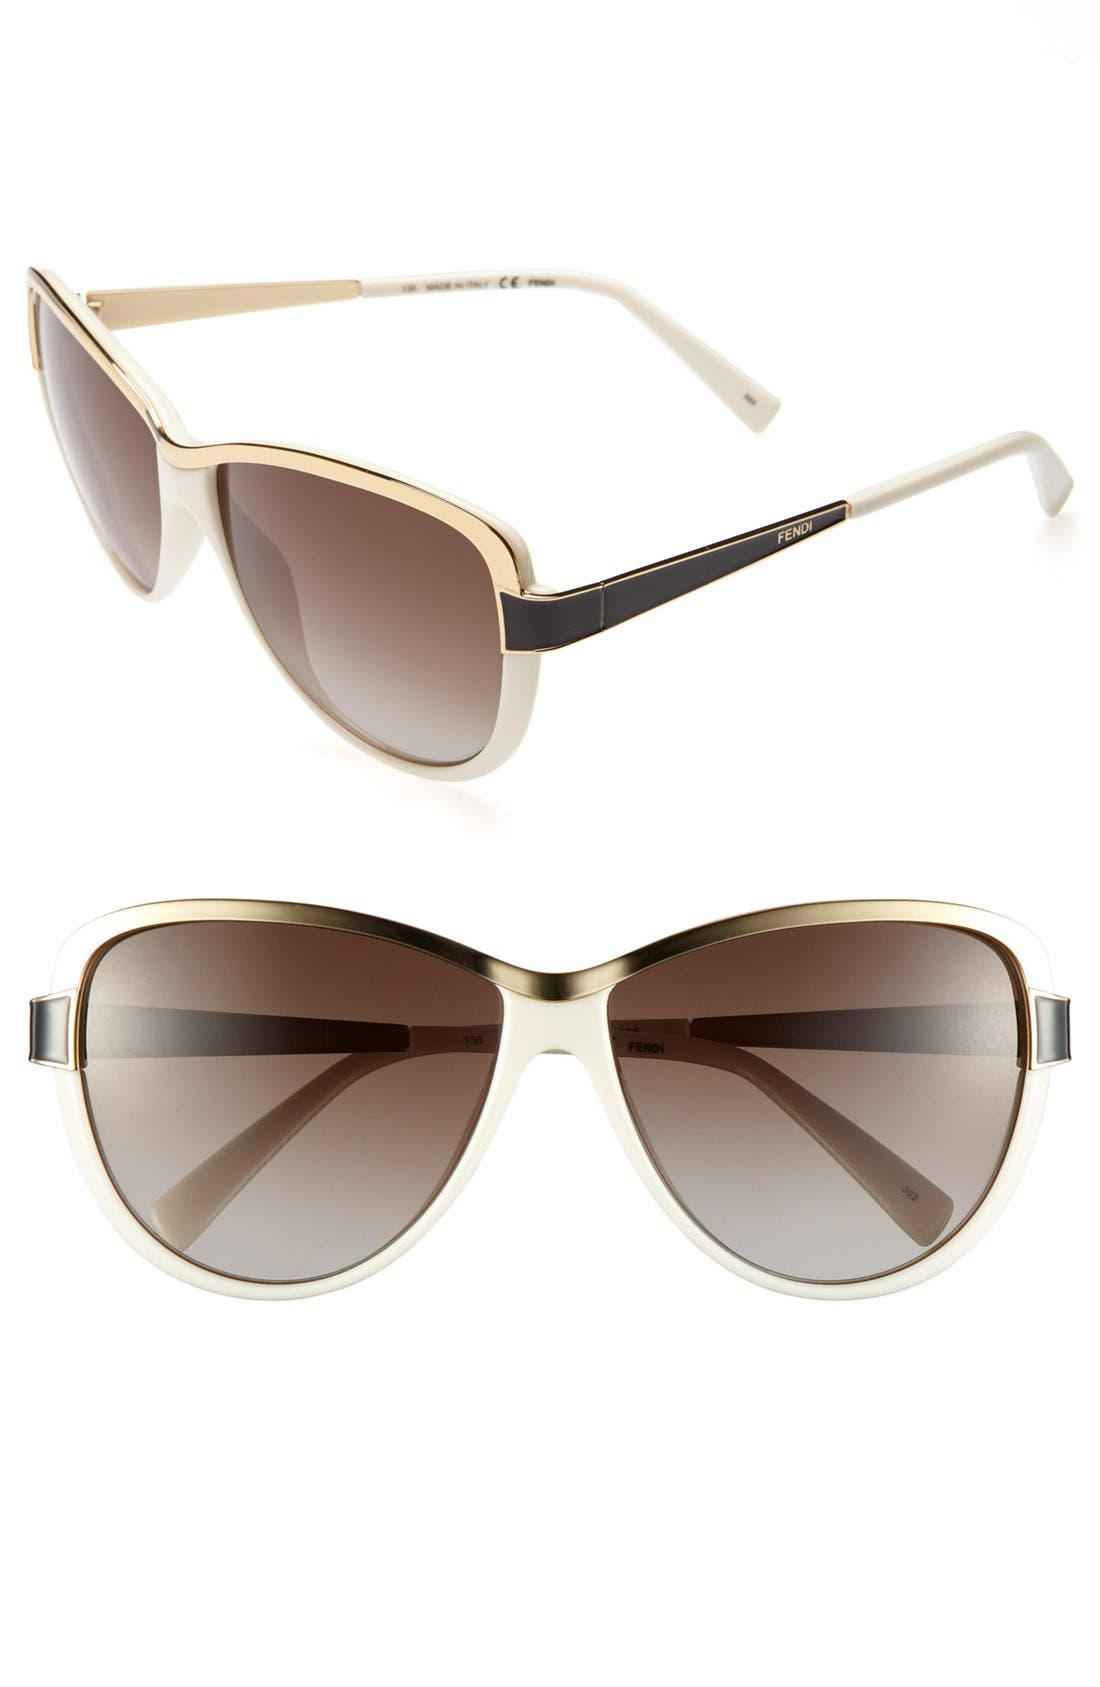 Main Image - Fendi 60mm Cat's Eye Sunglasses